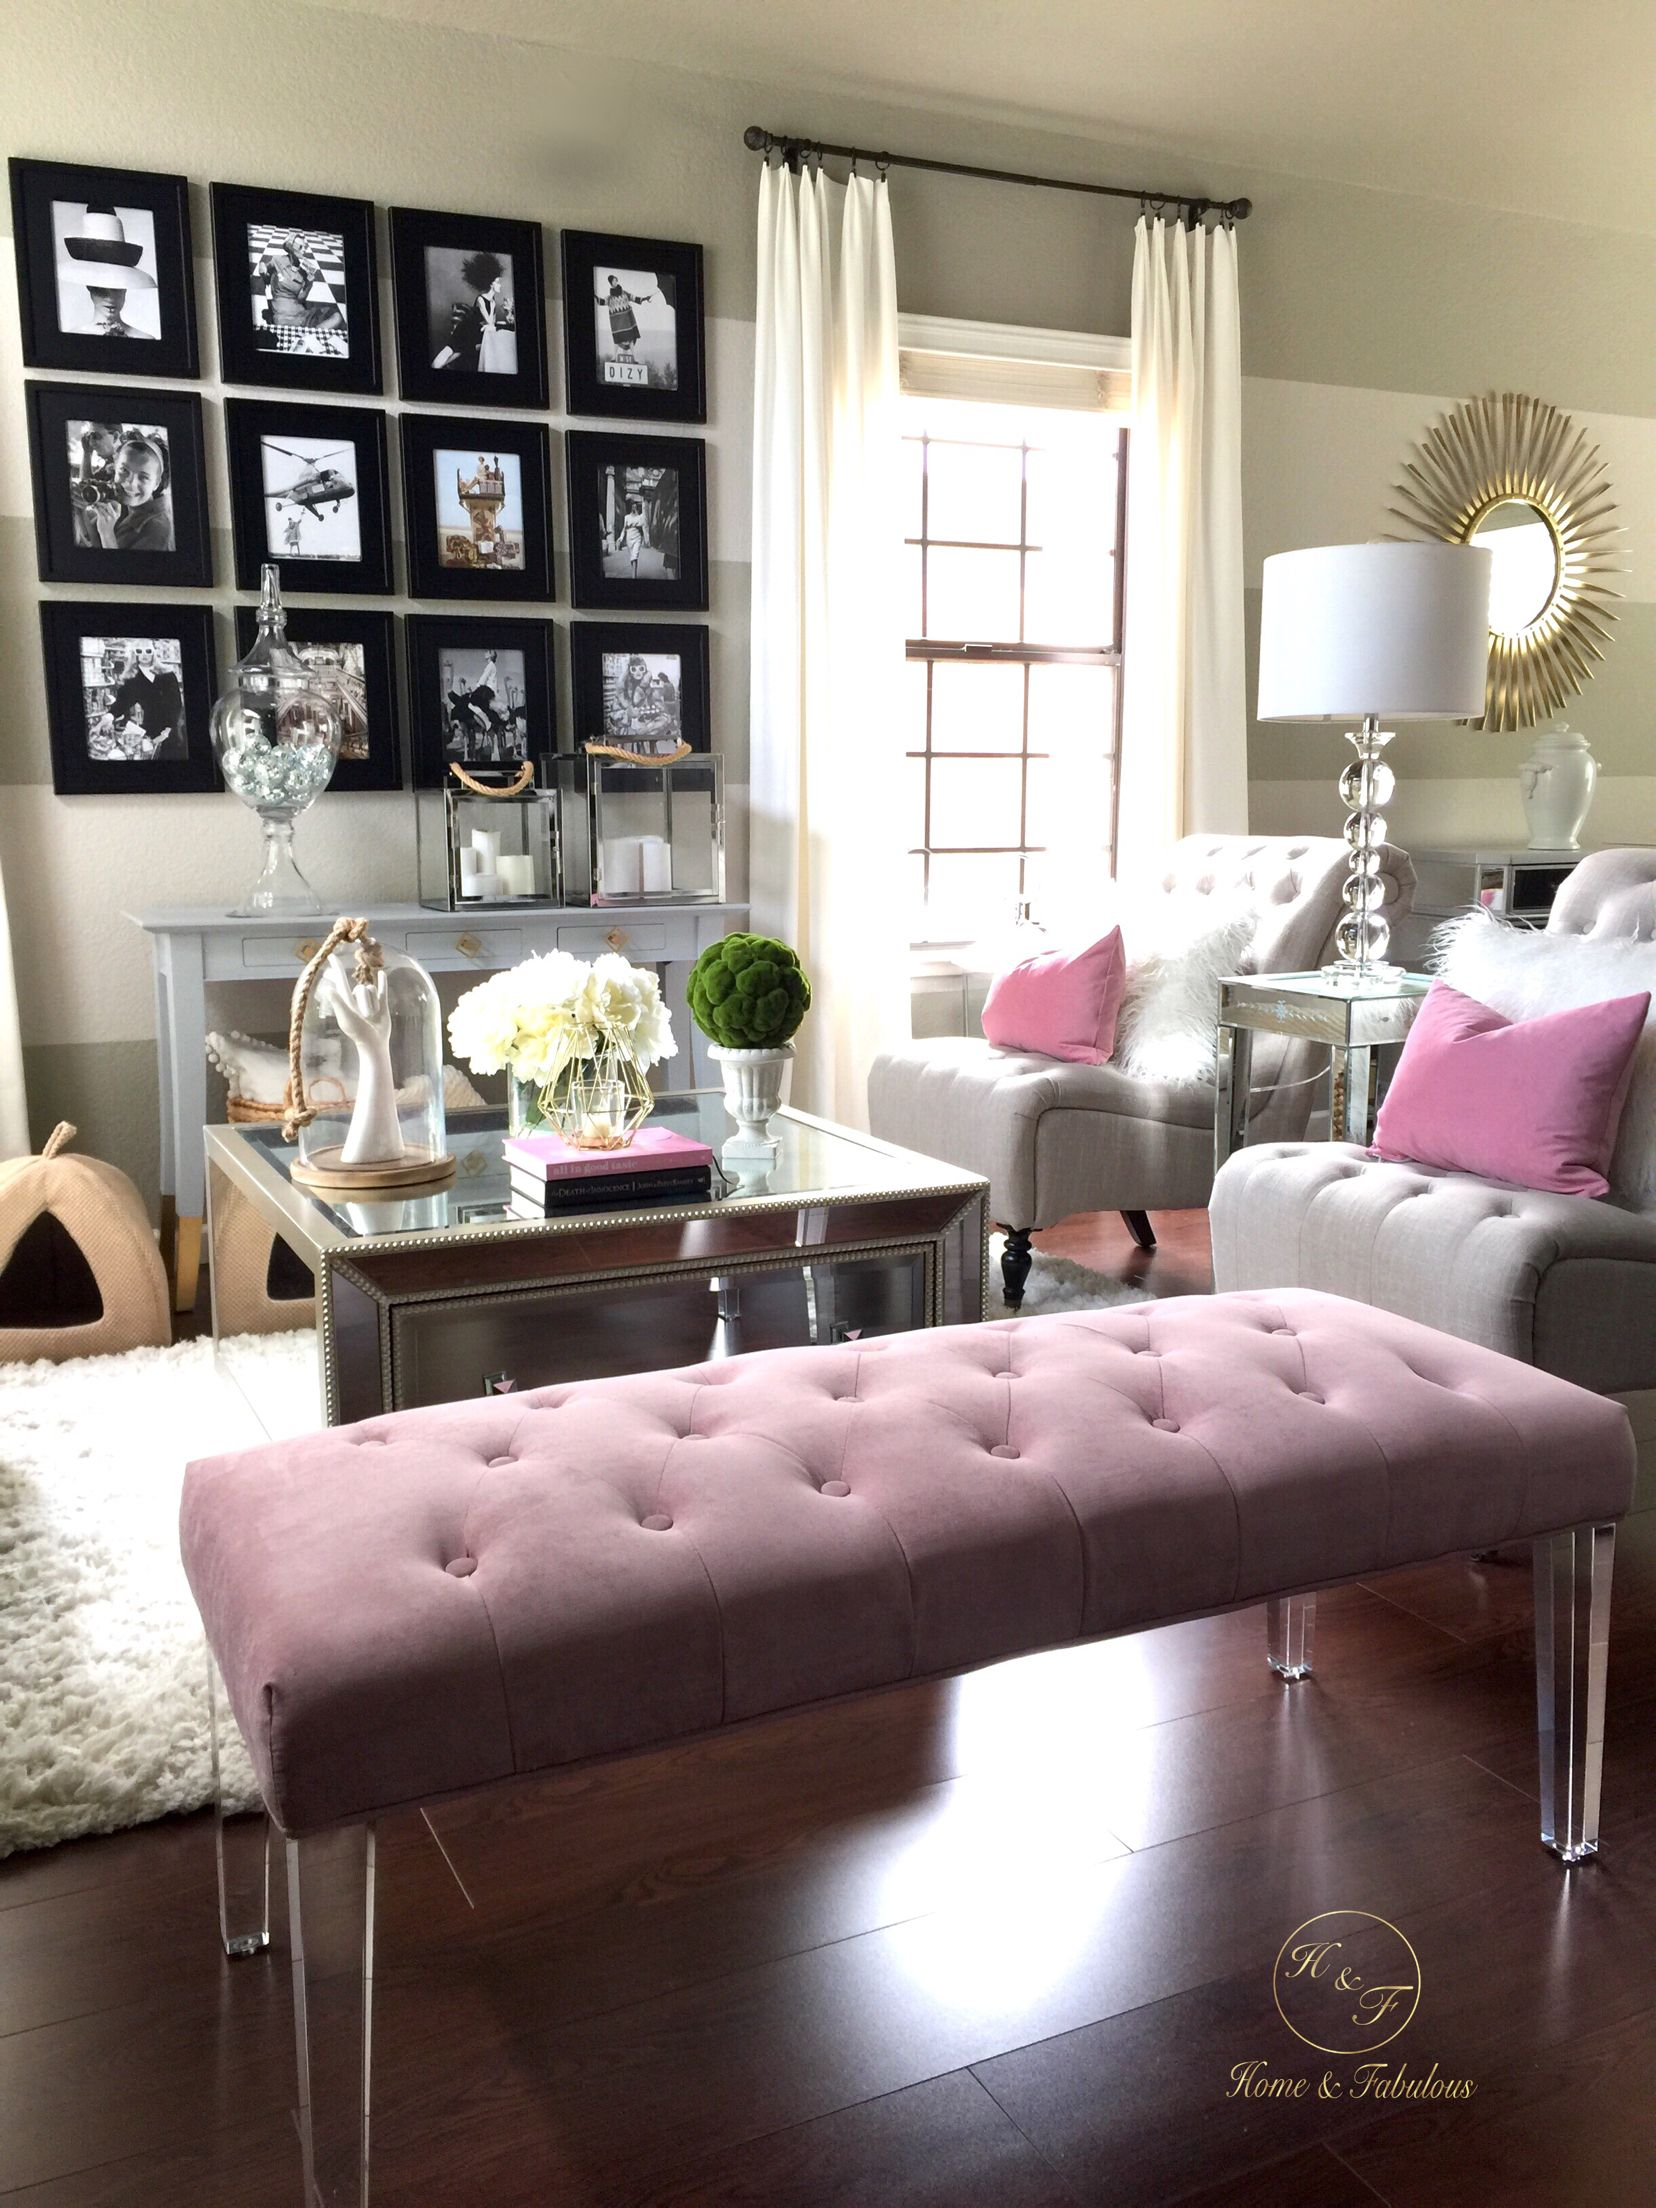 This Pink Tufted Bench From Homegoods Really Makes My Living